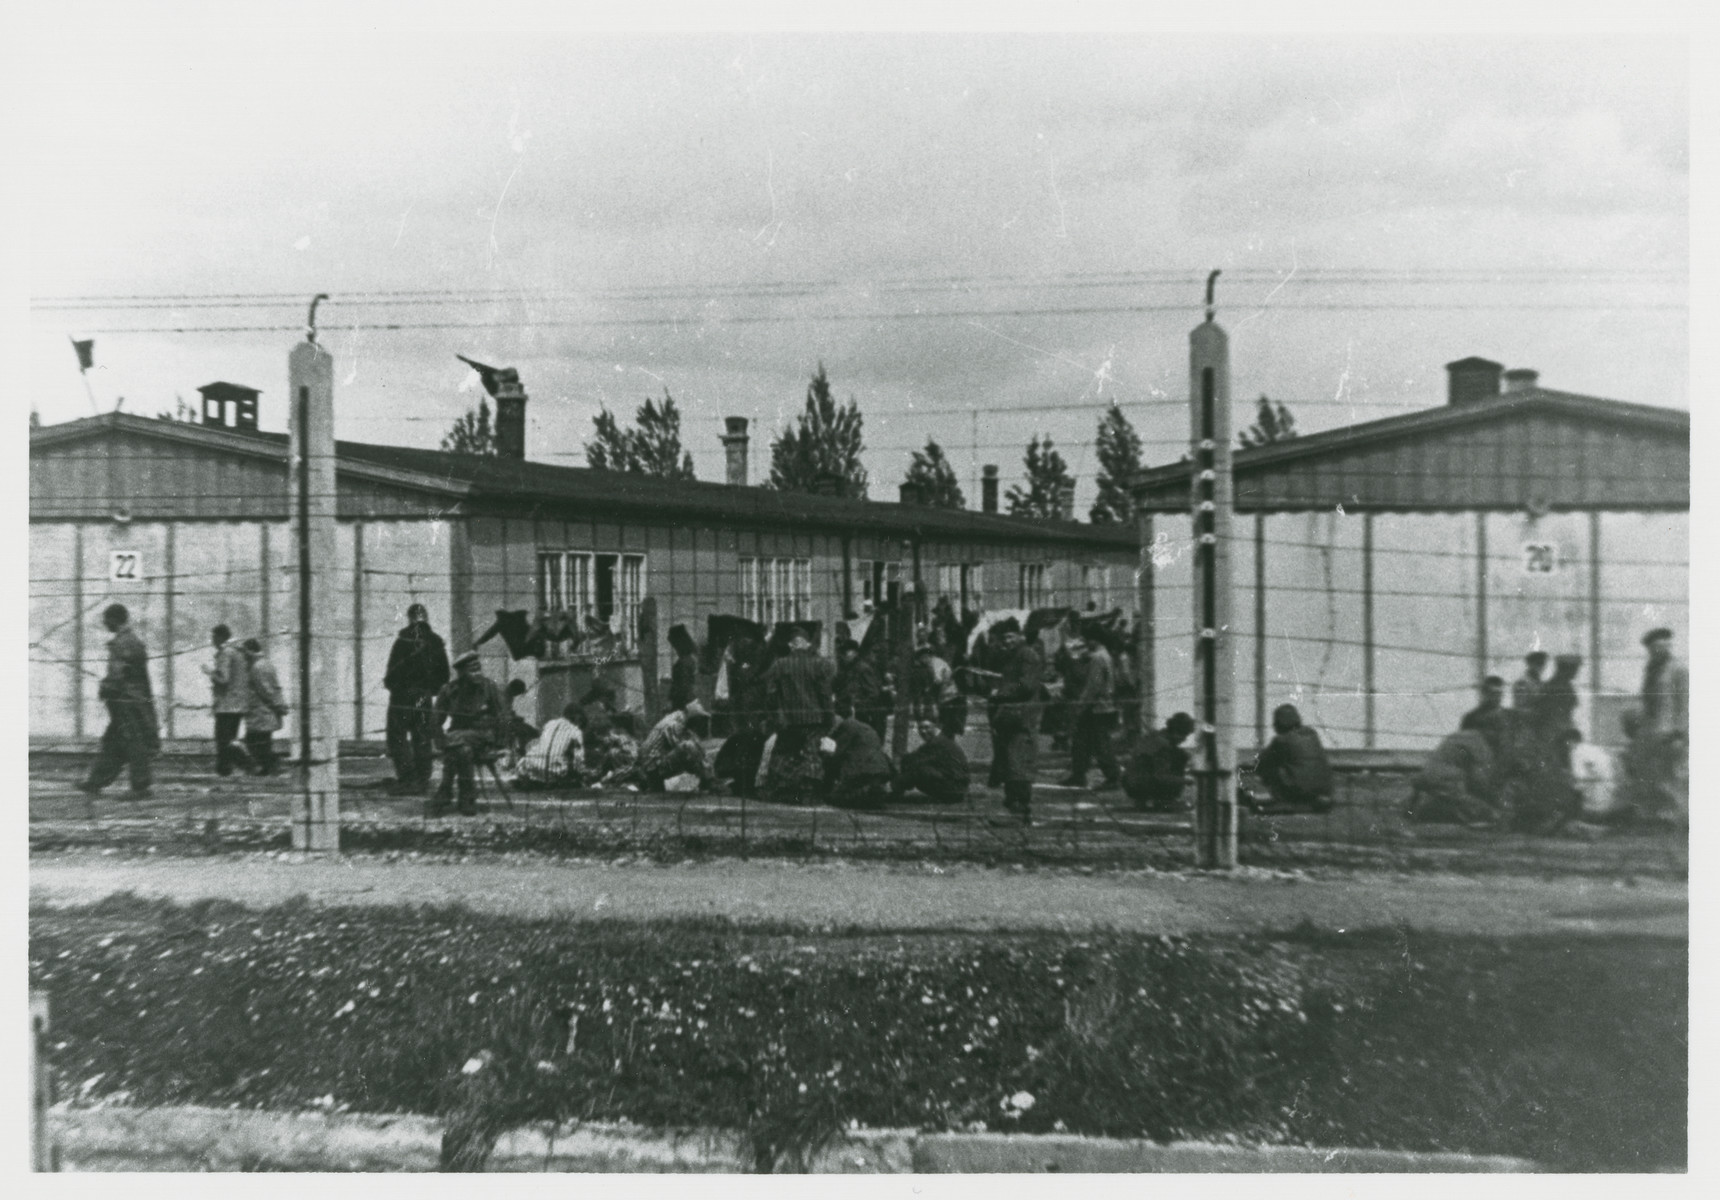 Survivors in Dachau after liberation.